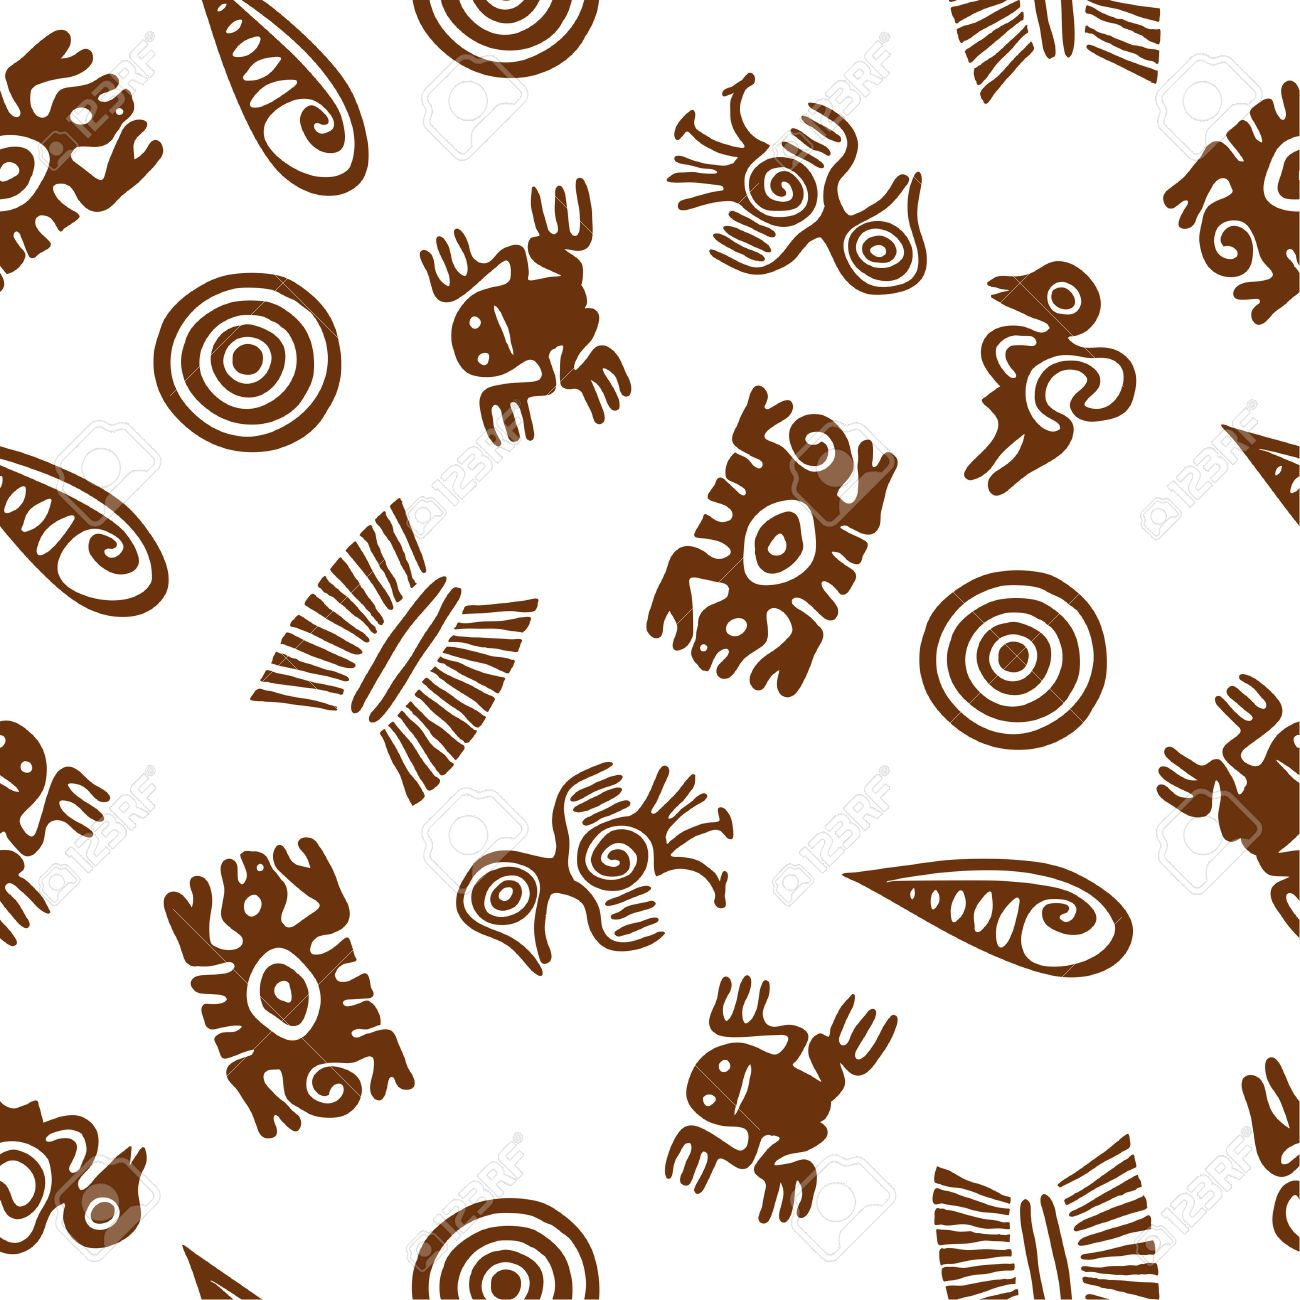 1300x1300 Image Result For Aztec Patterns Animals Jewelry